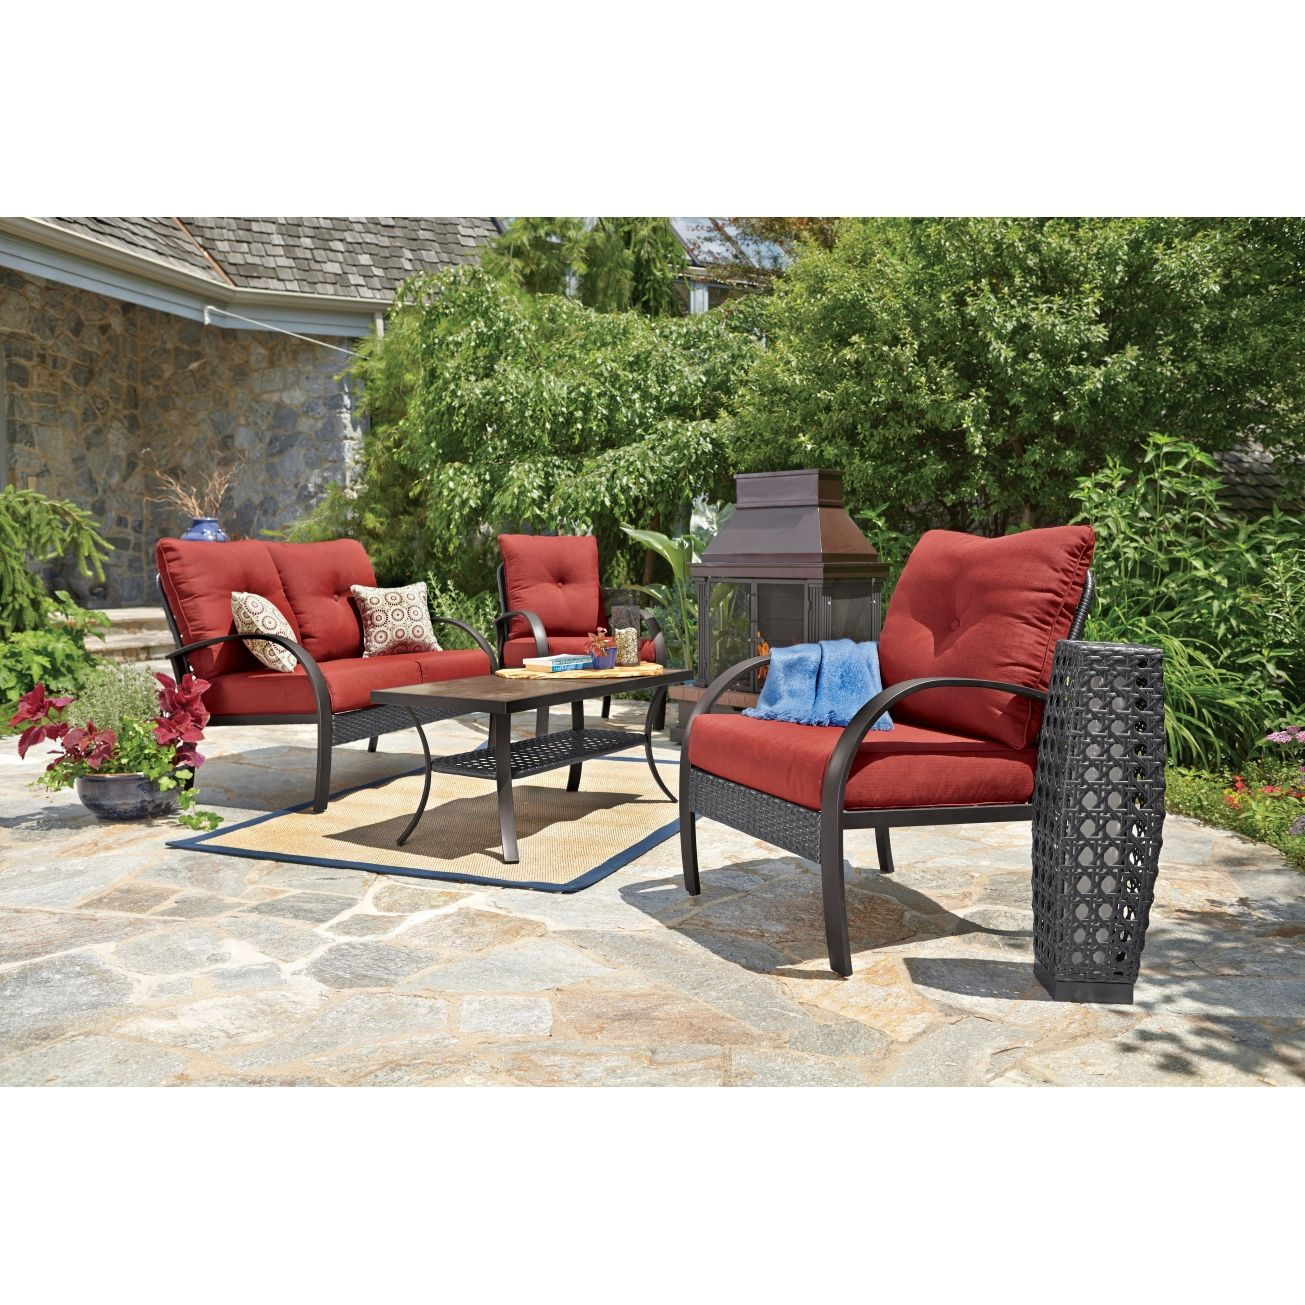 Great Anderson 4 Pc. Deep Seating Set   All Patio Collections   Ace Hardware